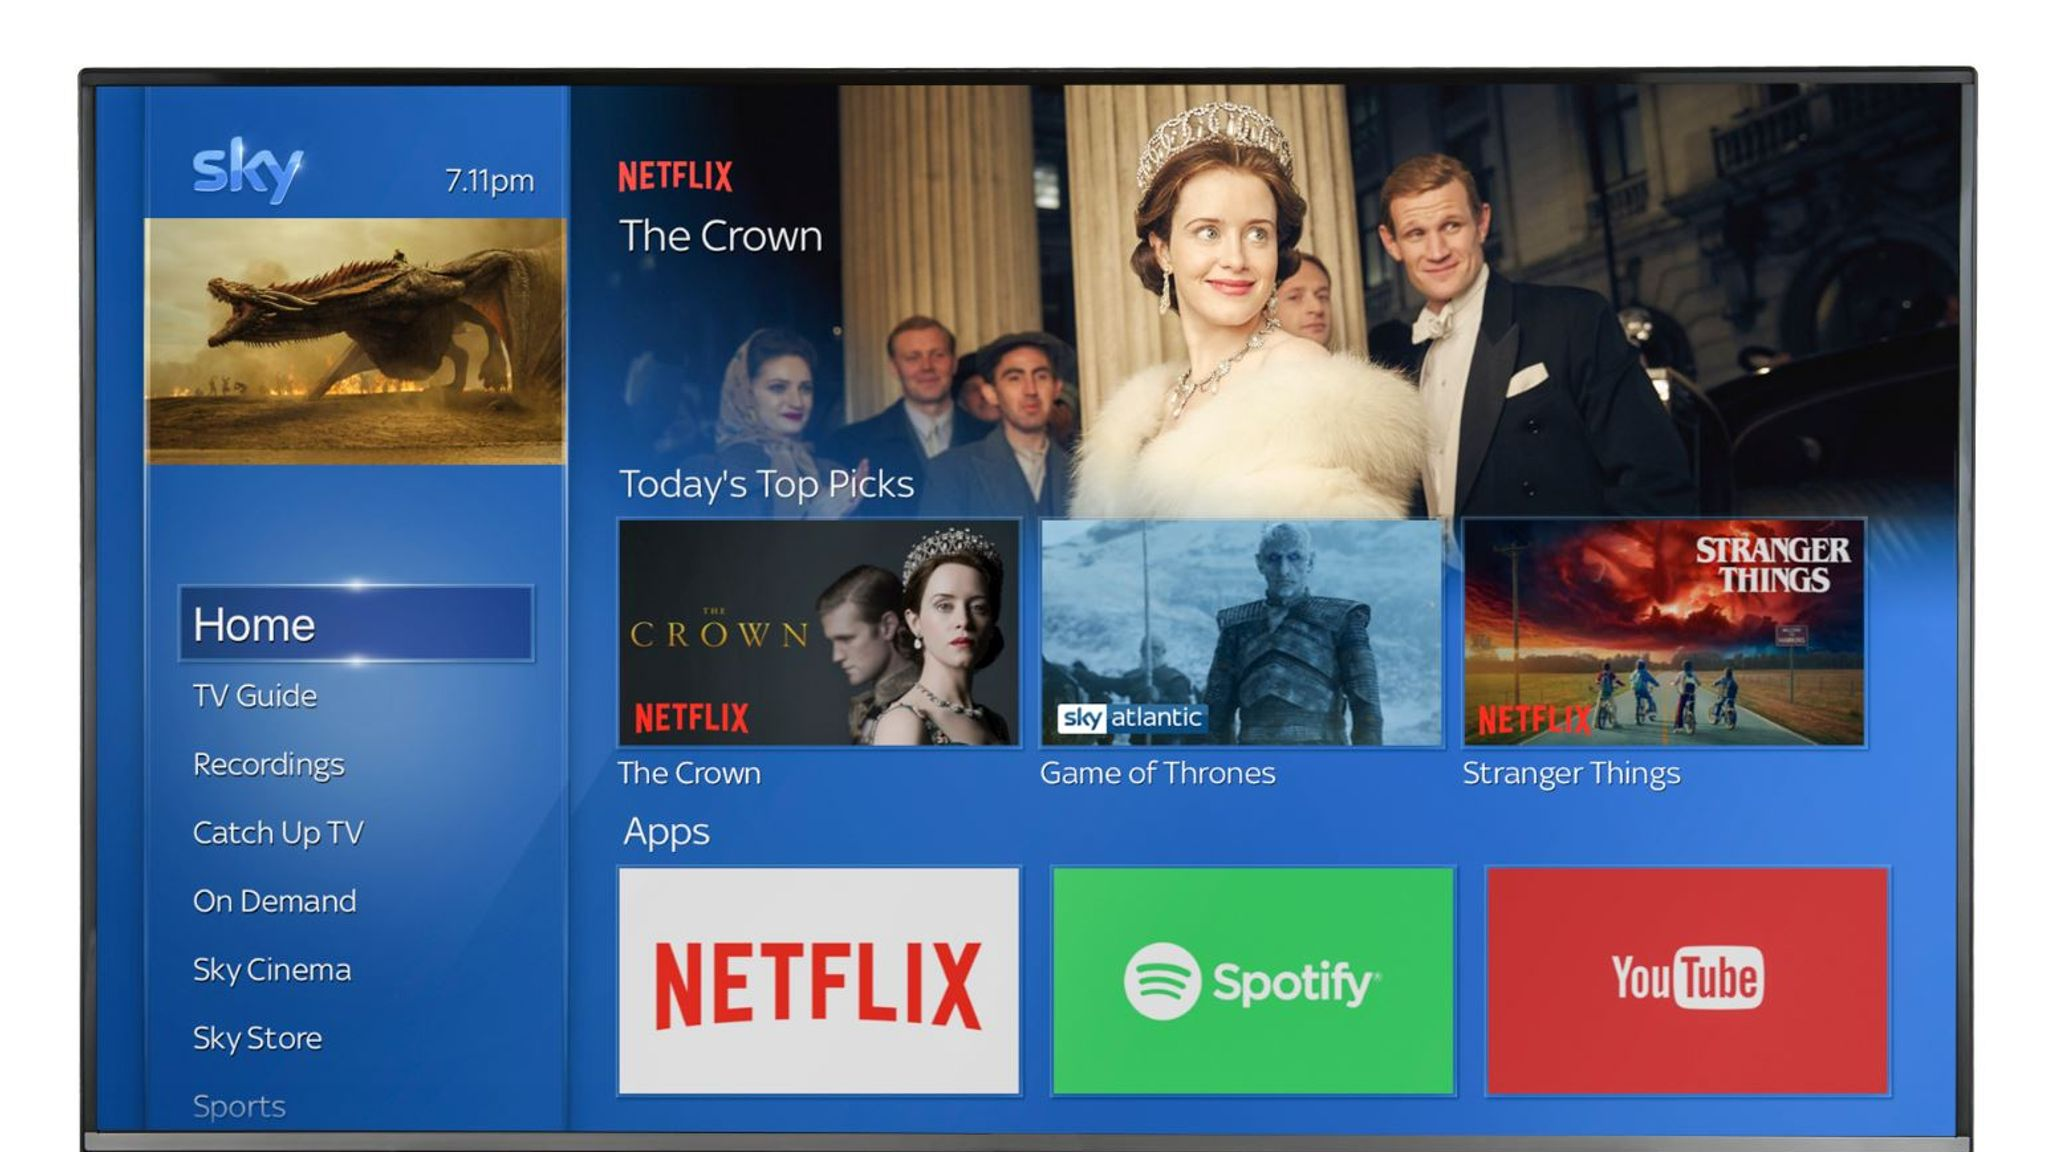 Sky and Netflix announce plans to create 'ultimate' TV